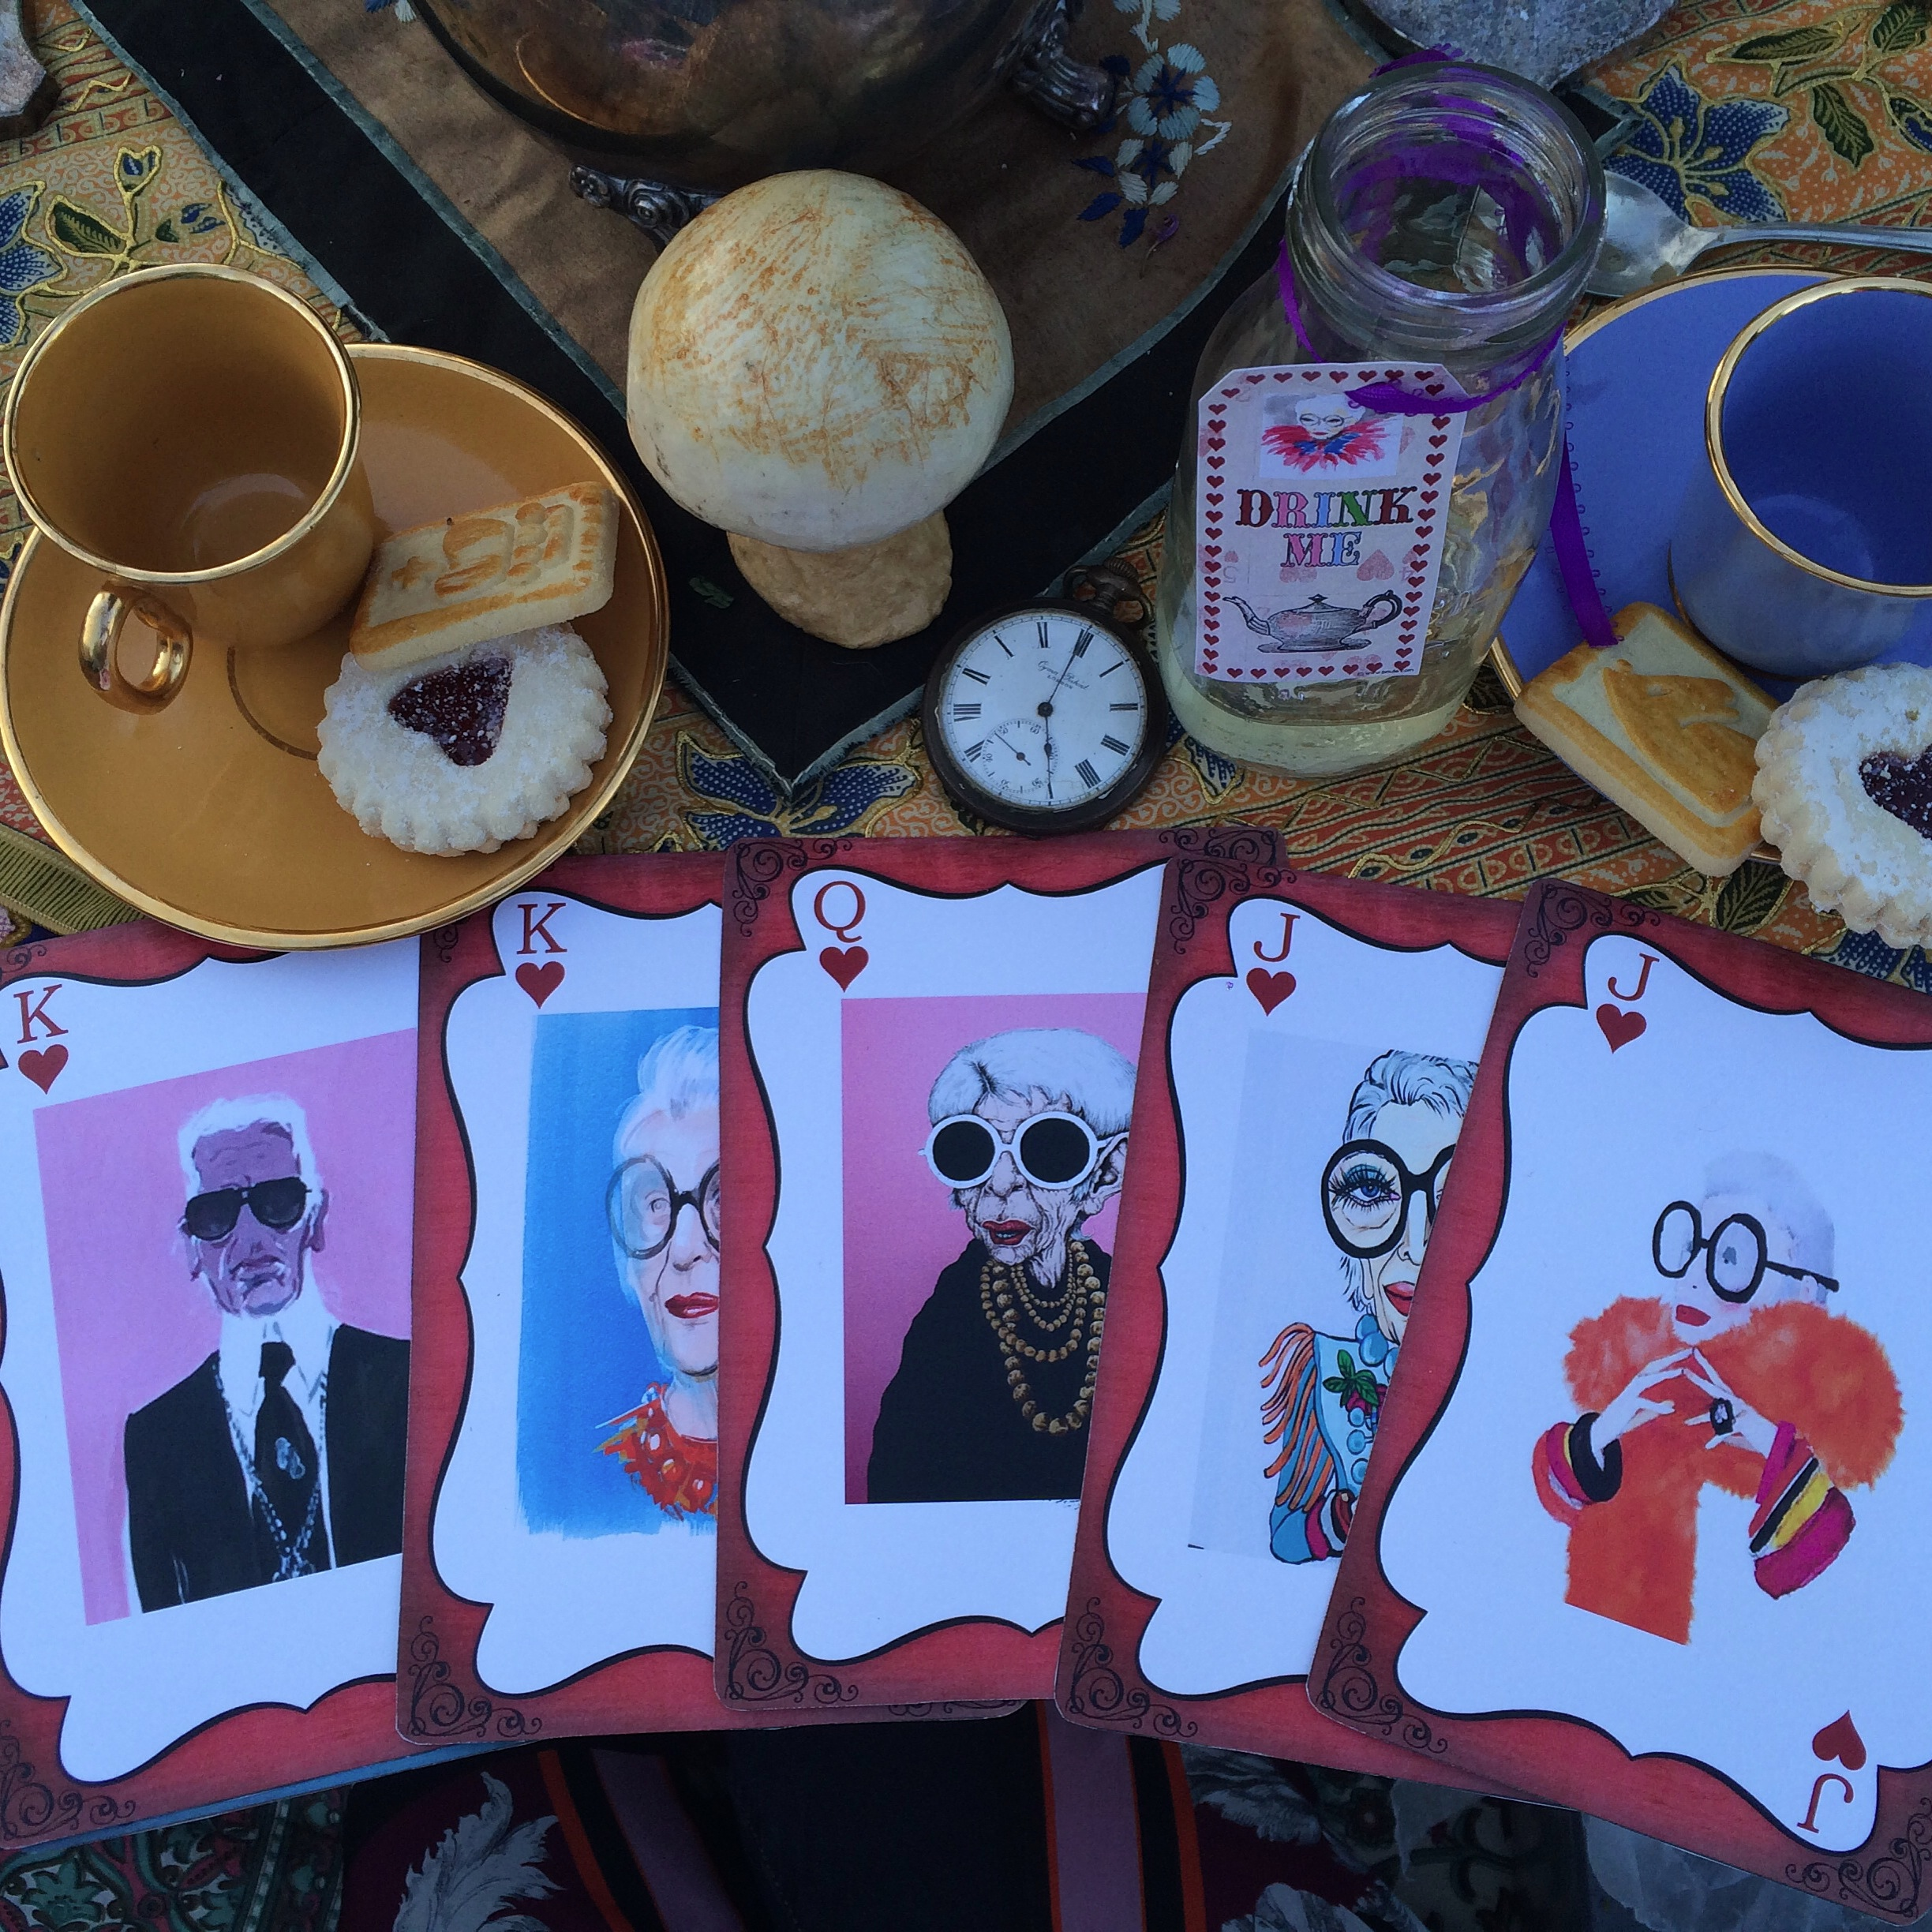 """Iris Apfel in Wonderland"" Picnic Contest and Screening"